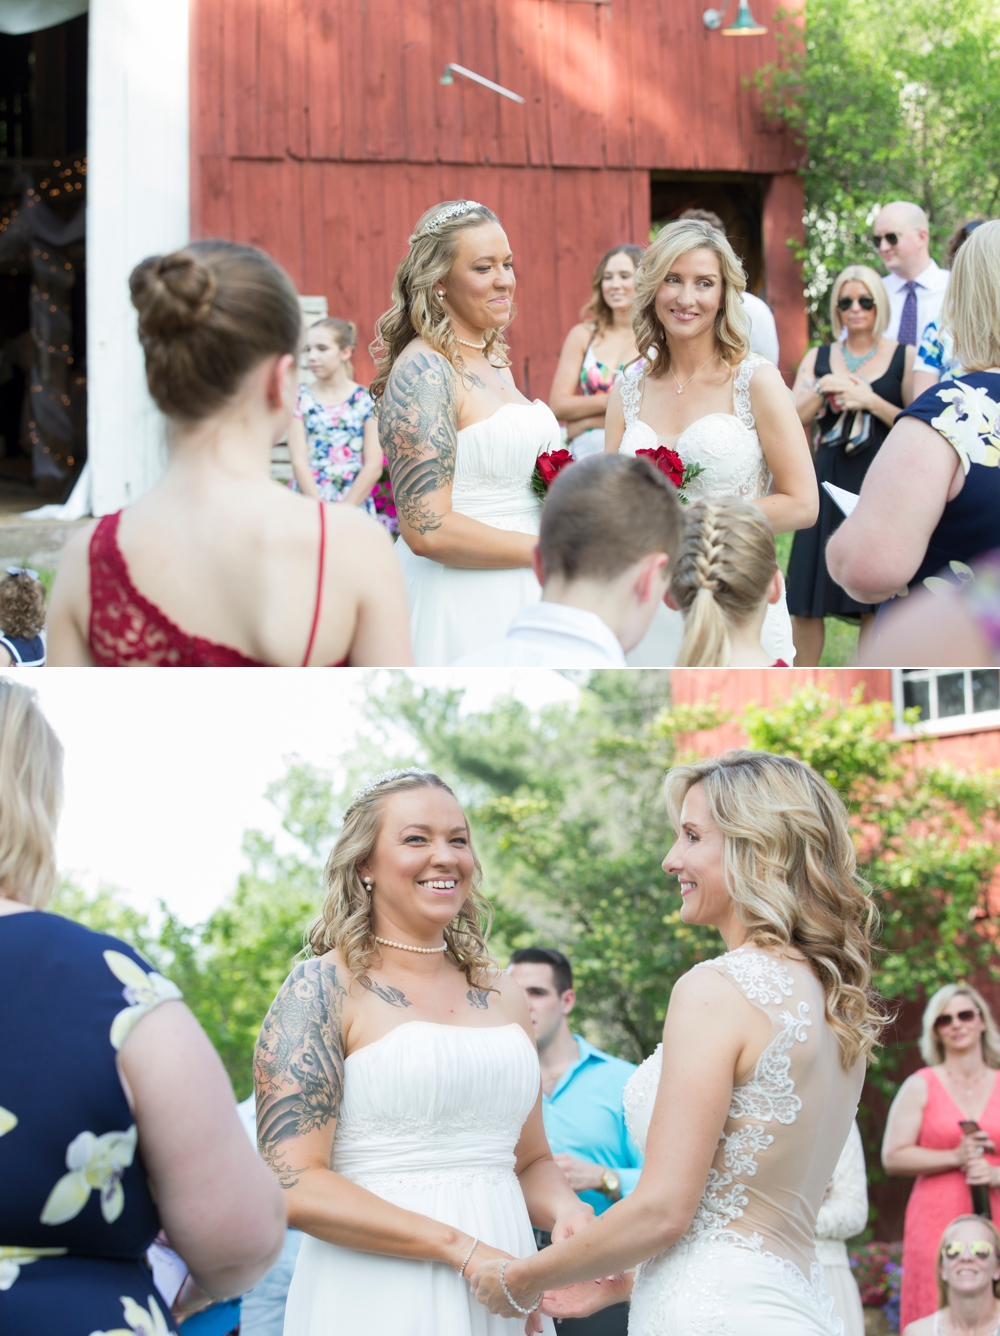 FairbanksFarm_Wedding_Jill&Lori_0011.jpg